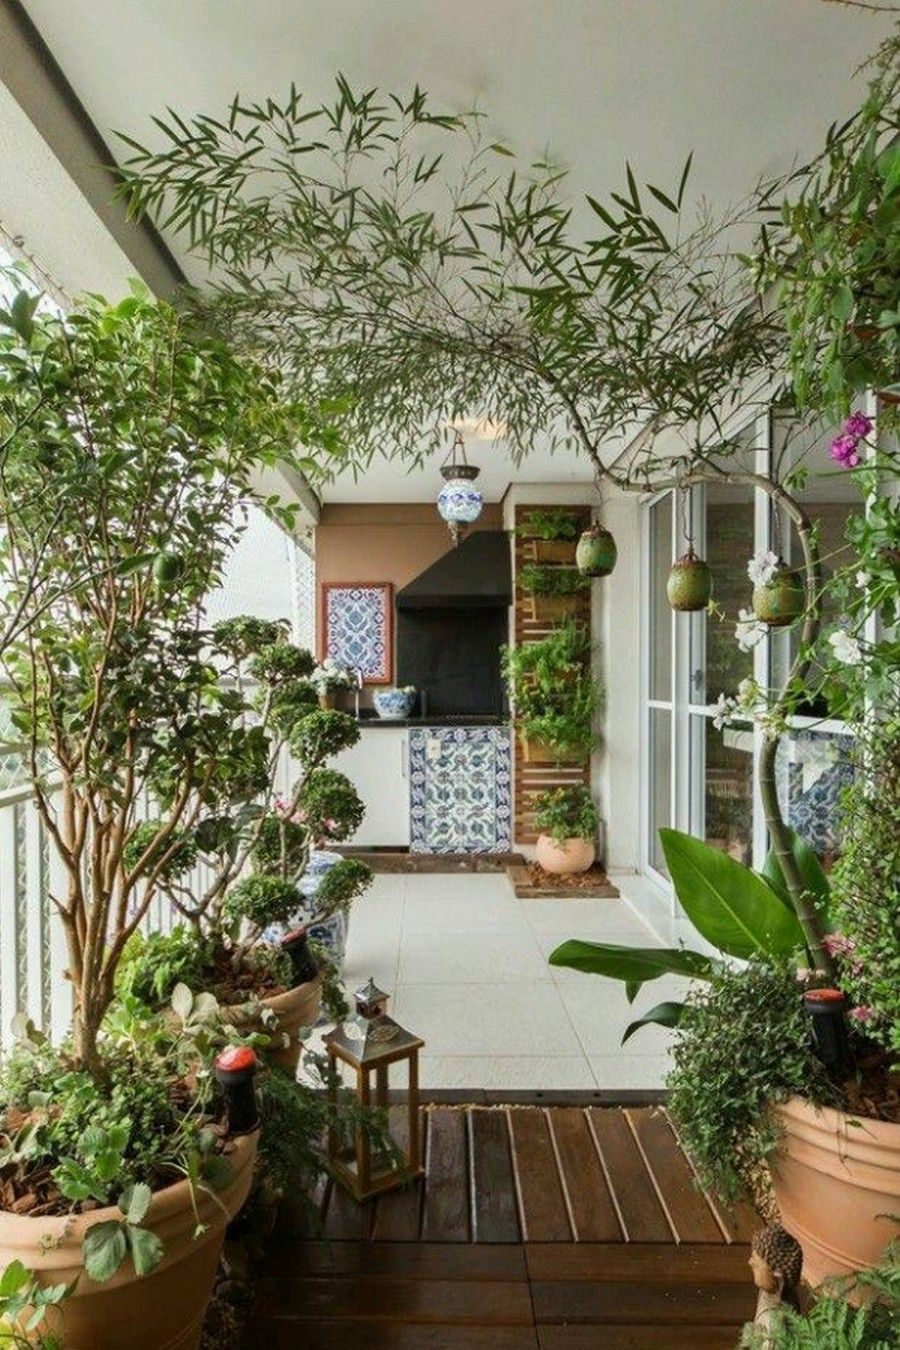 10 Clever Ways To Decorate Your Balcony Area | Small ...